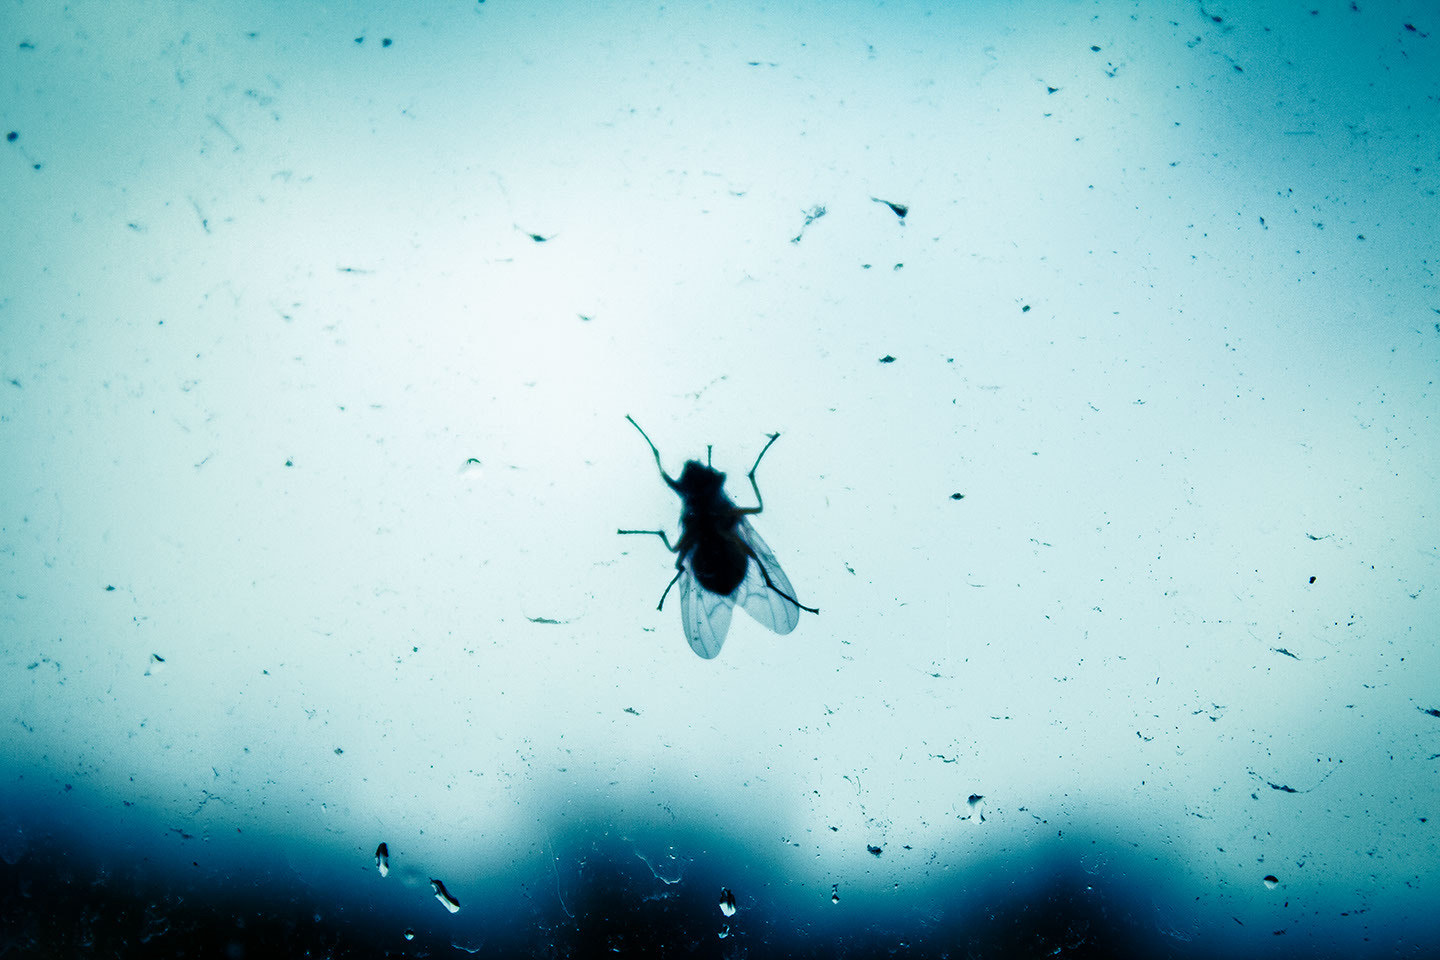 Photograph Fly in the rain by Denys Shyrokov on 500px